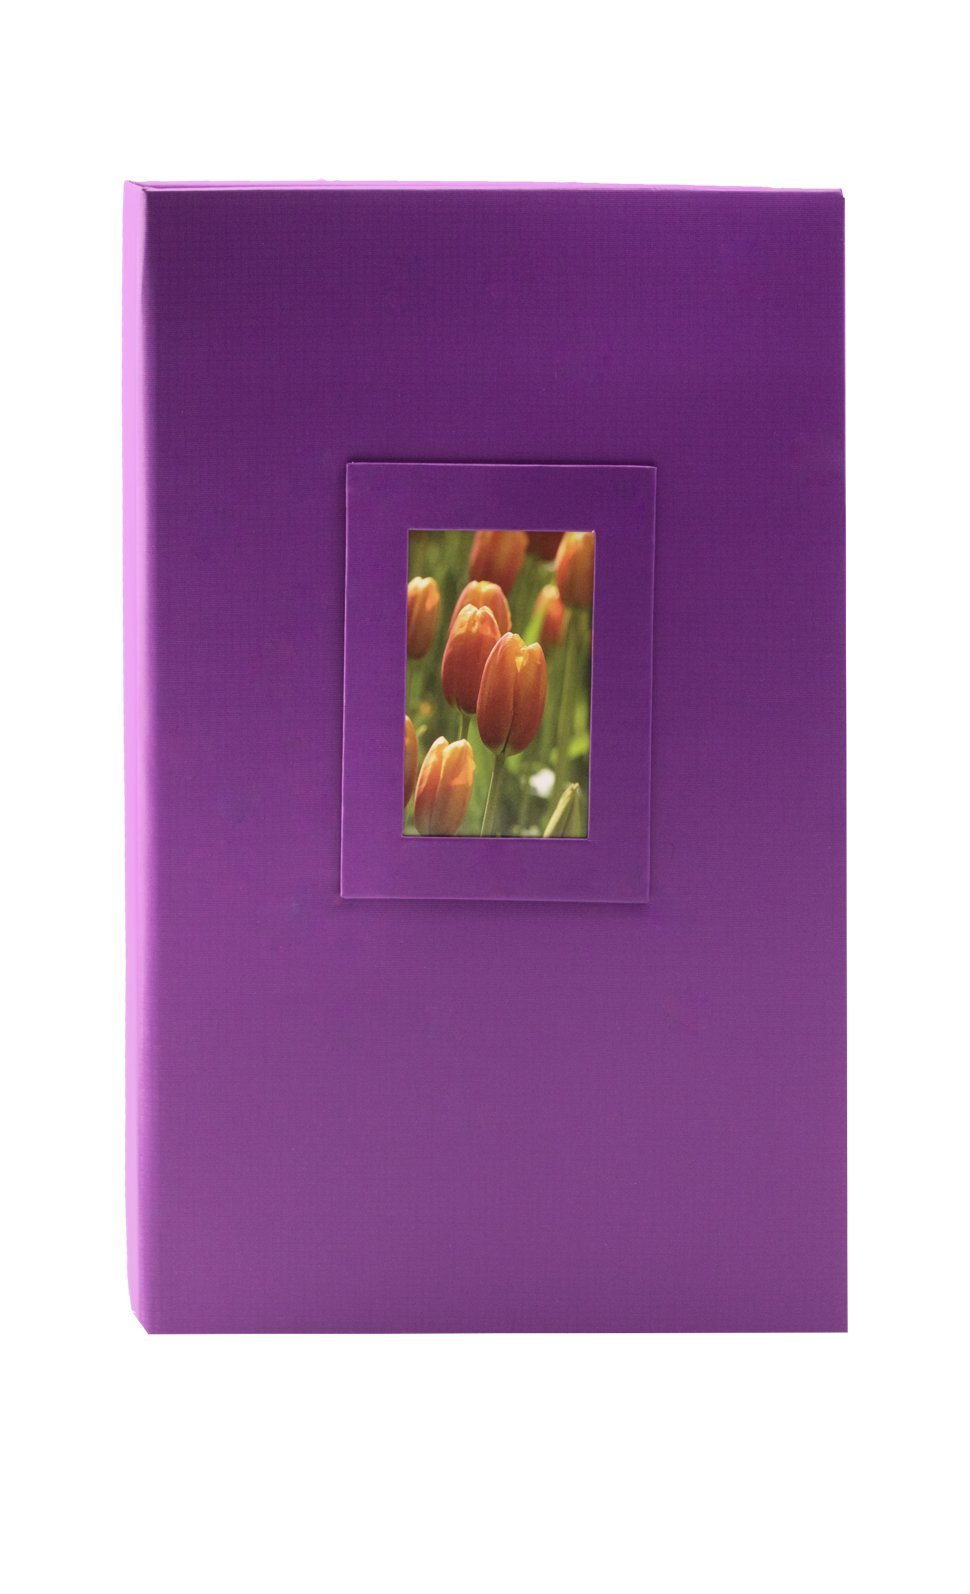 KVD Kleer-Vu Deluxe Albums Inc. Floramma Collection, Holds 300 4x6 Photos, 3 Per Page, Window Frame Cover, Purple